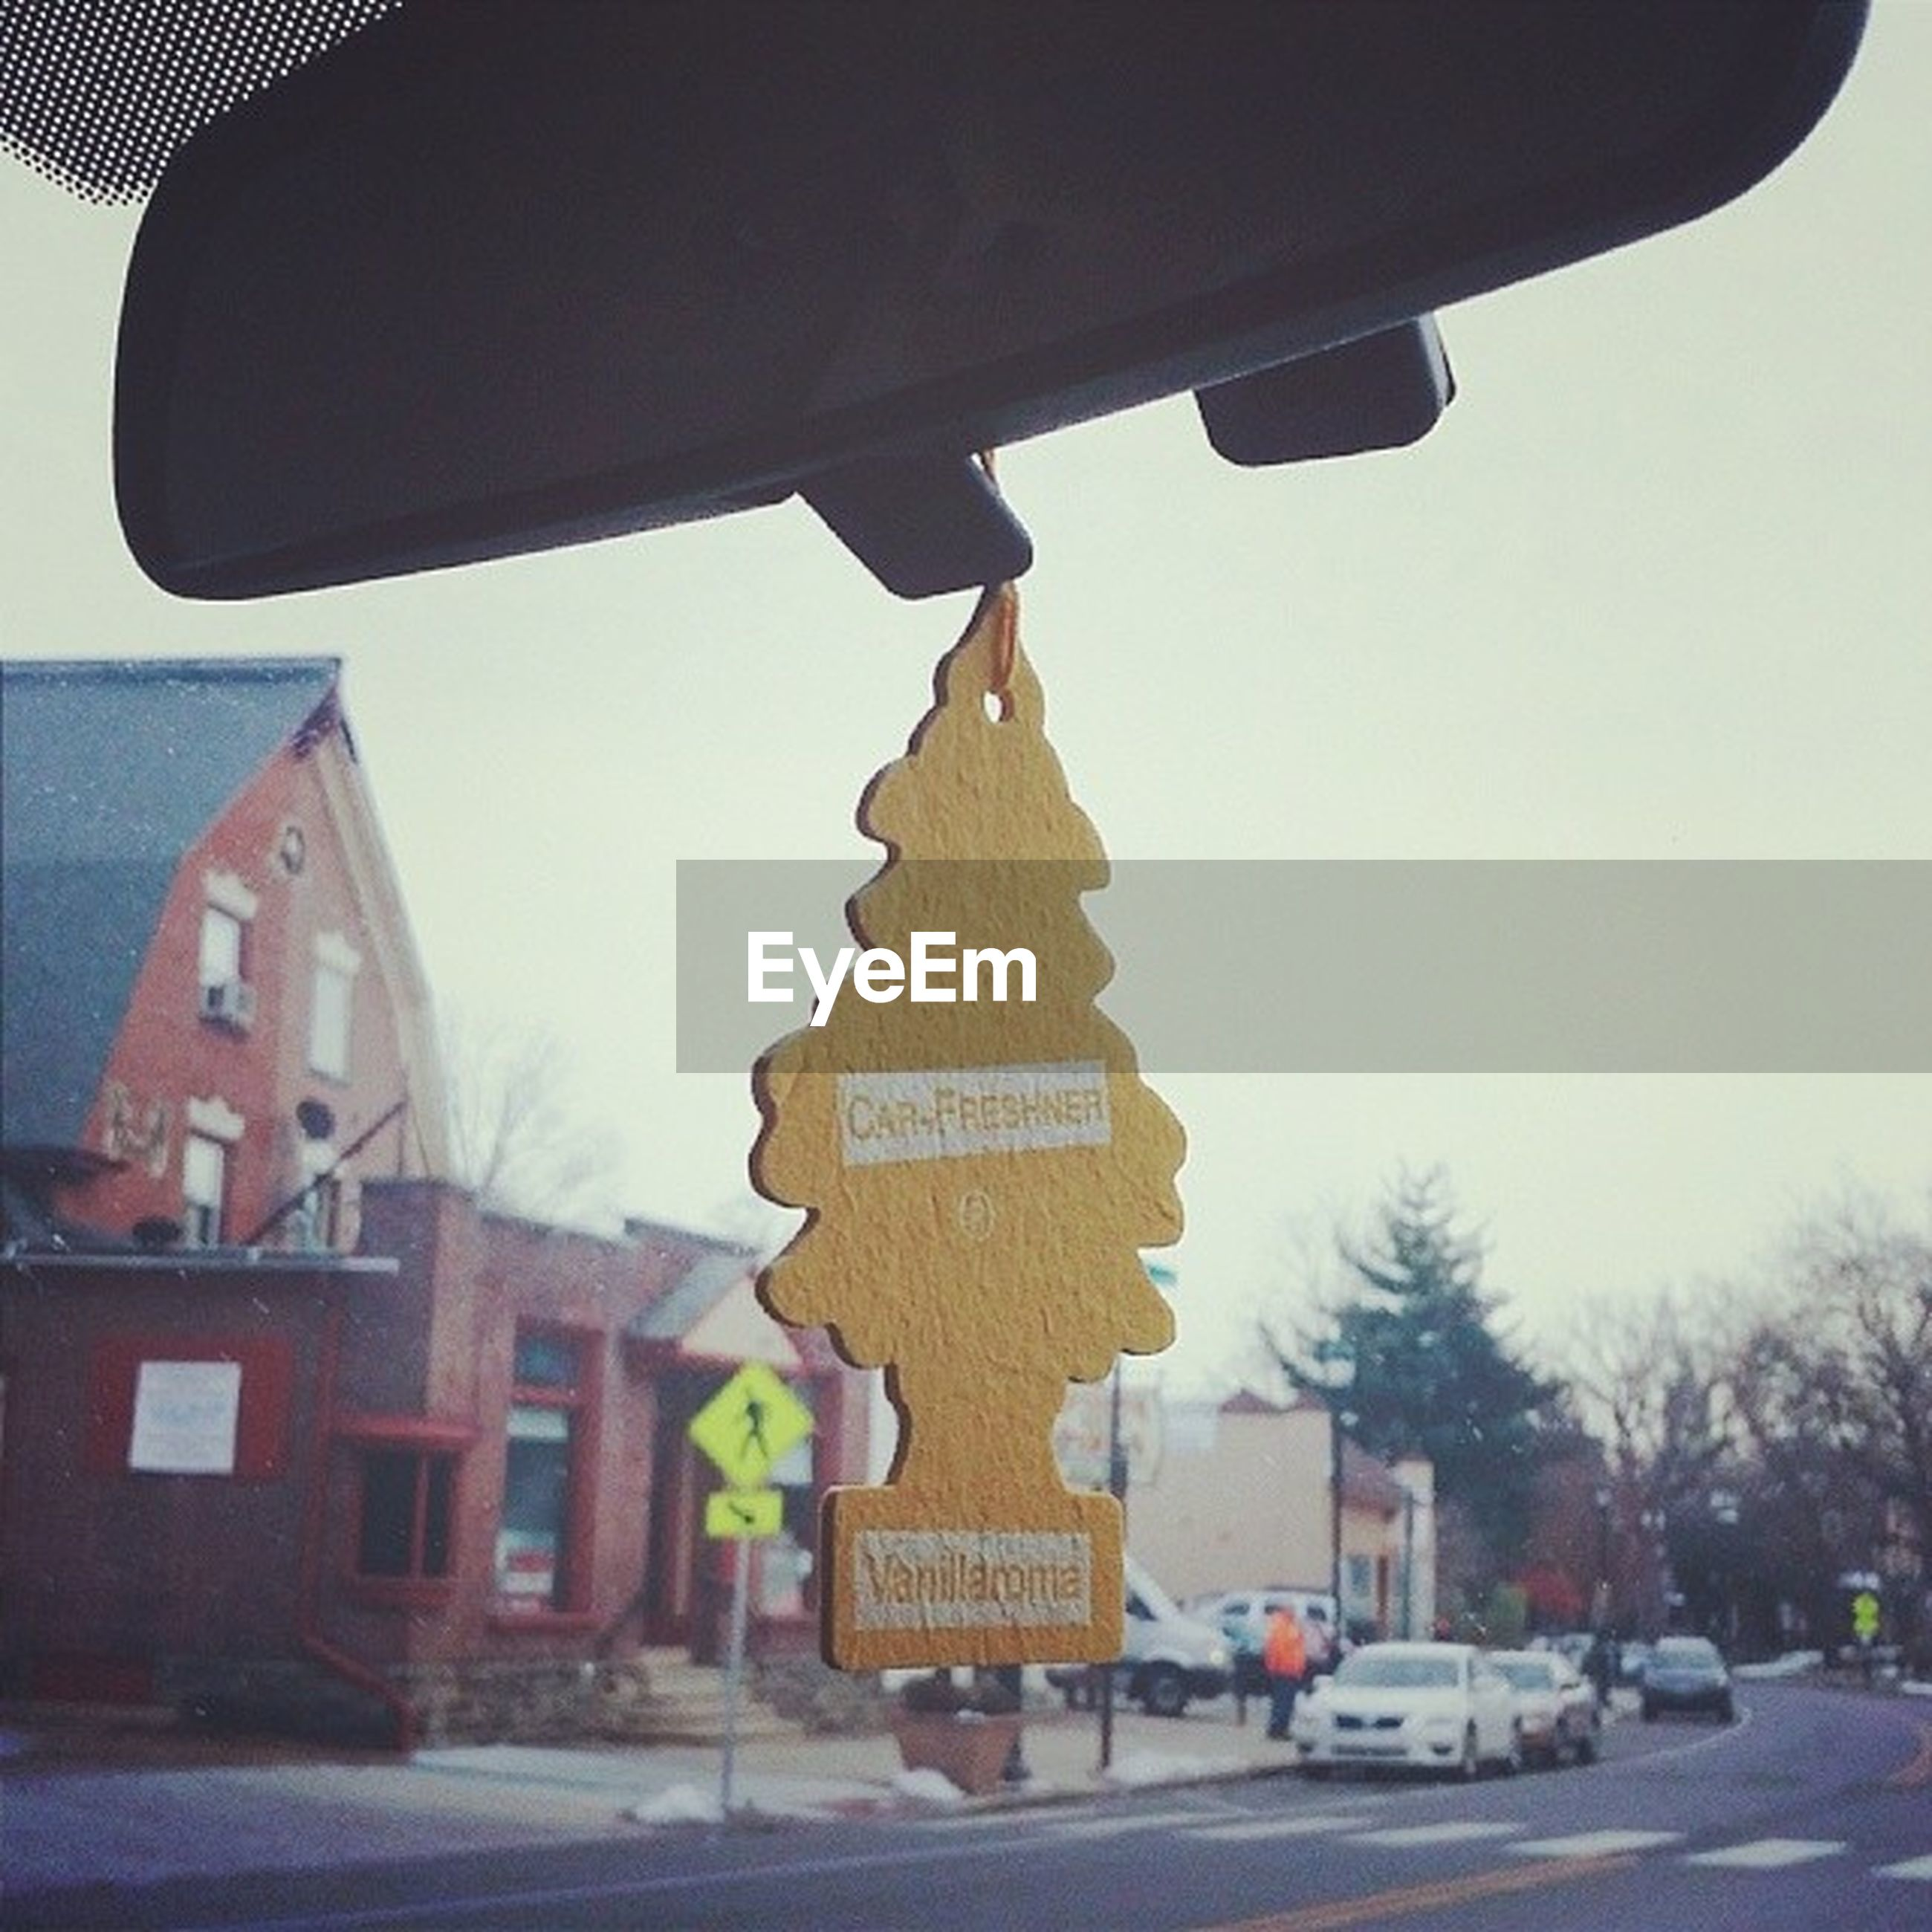 transportation, car, clear sky, mode of transport, land vehicle, building exterior, built structure, architecture, text, city, communication, street, road sign, western script, road, guidance, travel, low angle view, outdoors, information sign